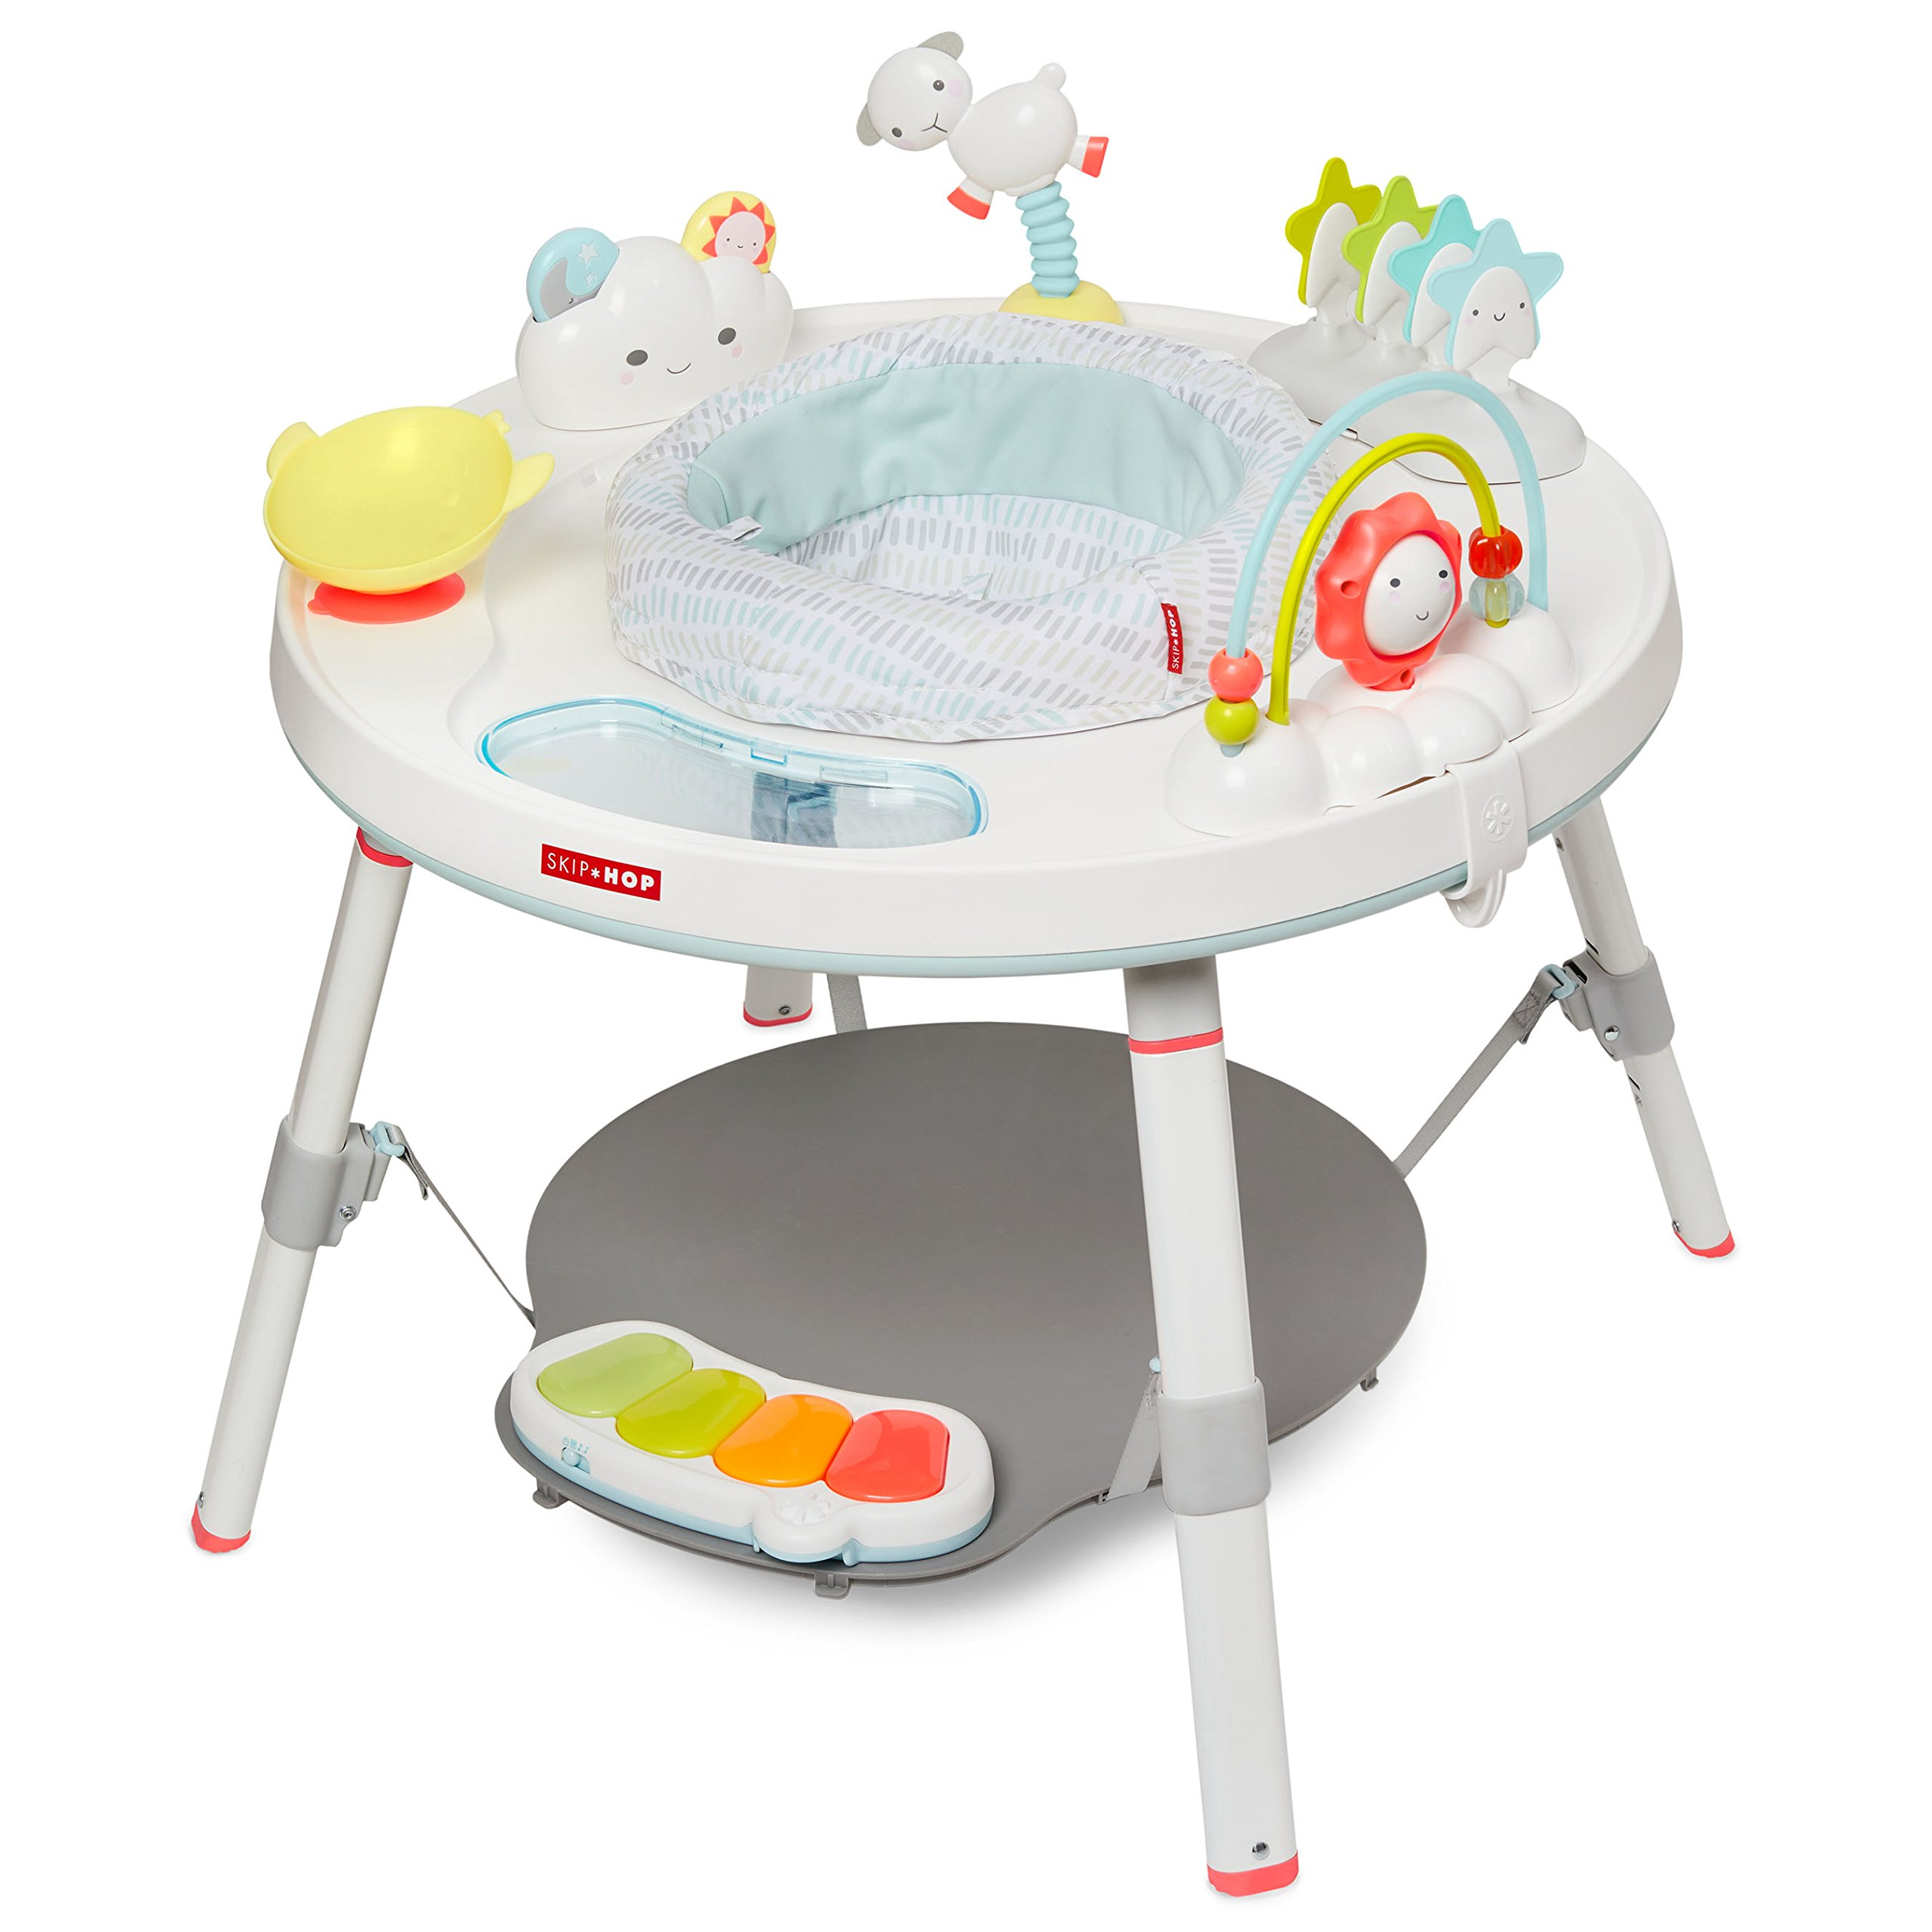 Skip Hop Baby's View 3-Stage Activity Center, Silver Lining Cloud, 4m+ by Skip Hop